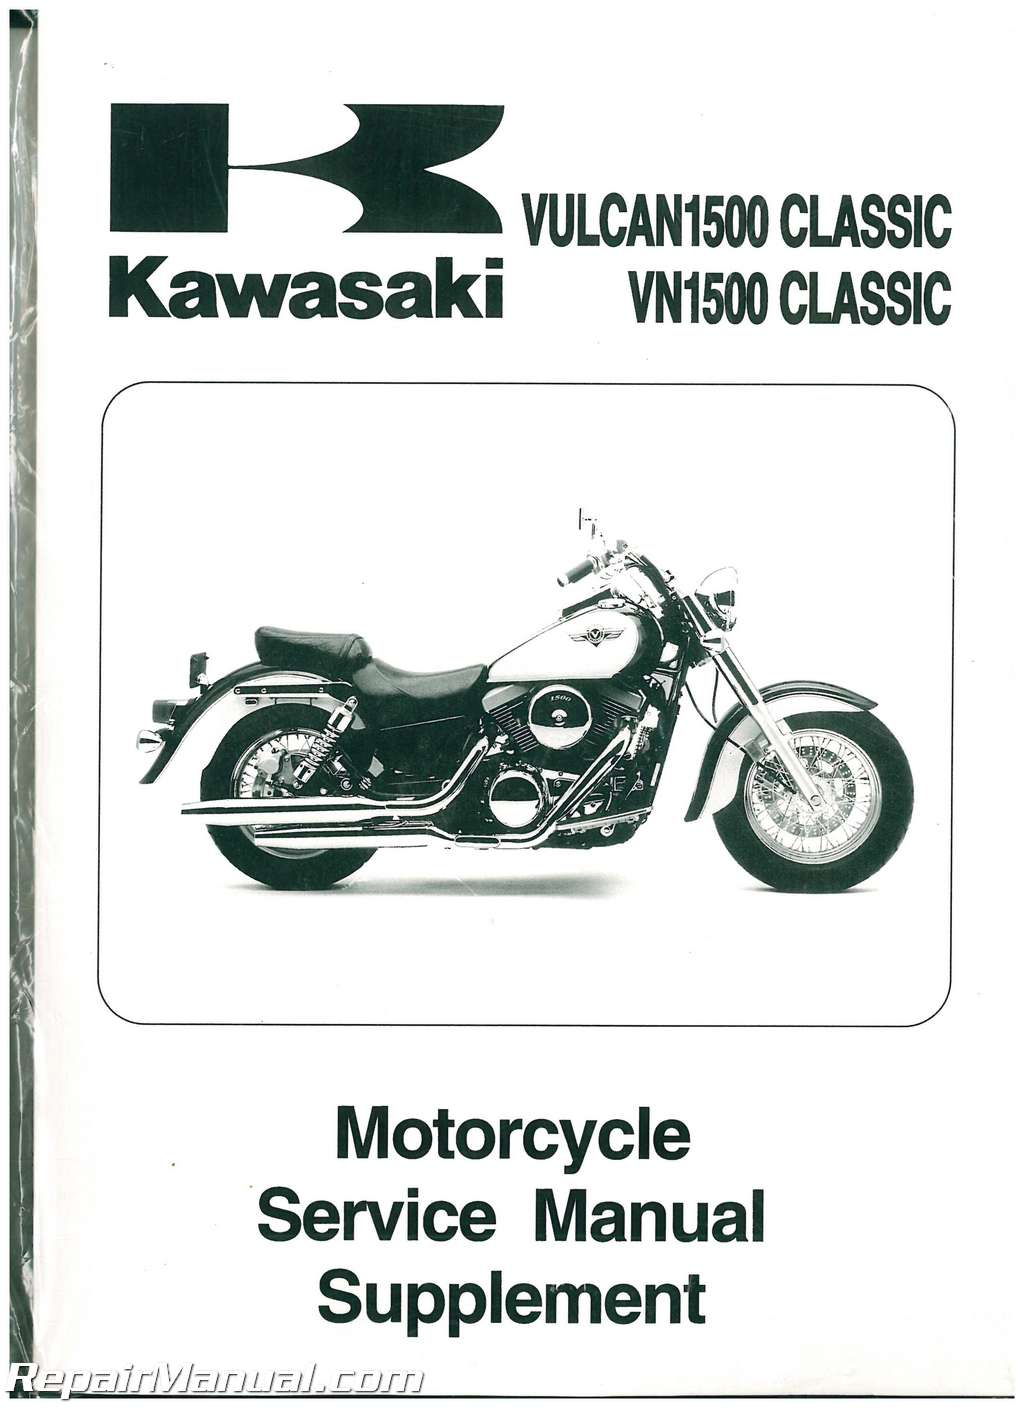 1998 2004 kawasaki vulcan classic 1500 motorcycle service manual rh repairmanual com kawasaki vn 1500 repair manual download kawasaki vulcan 1500 repair manual pdf